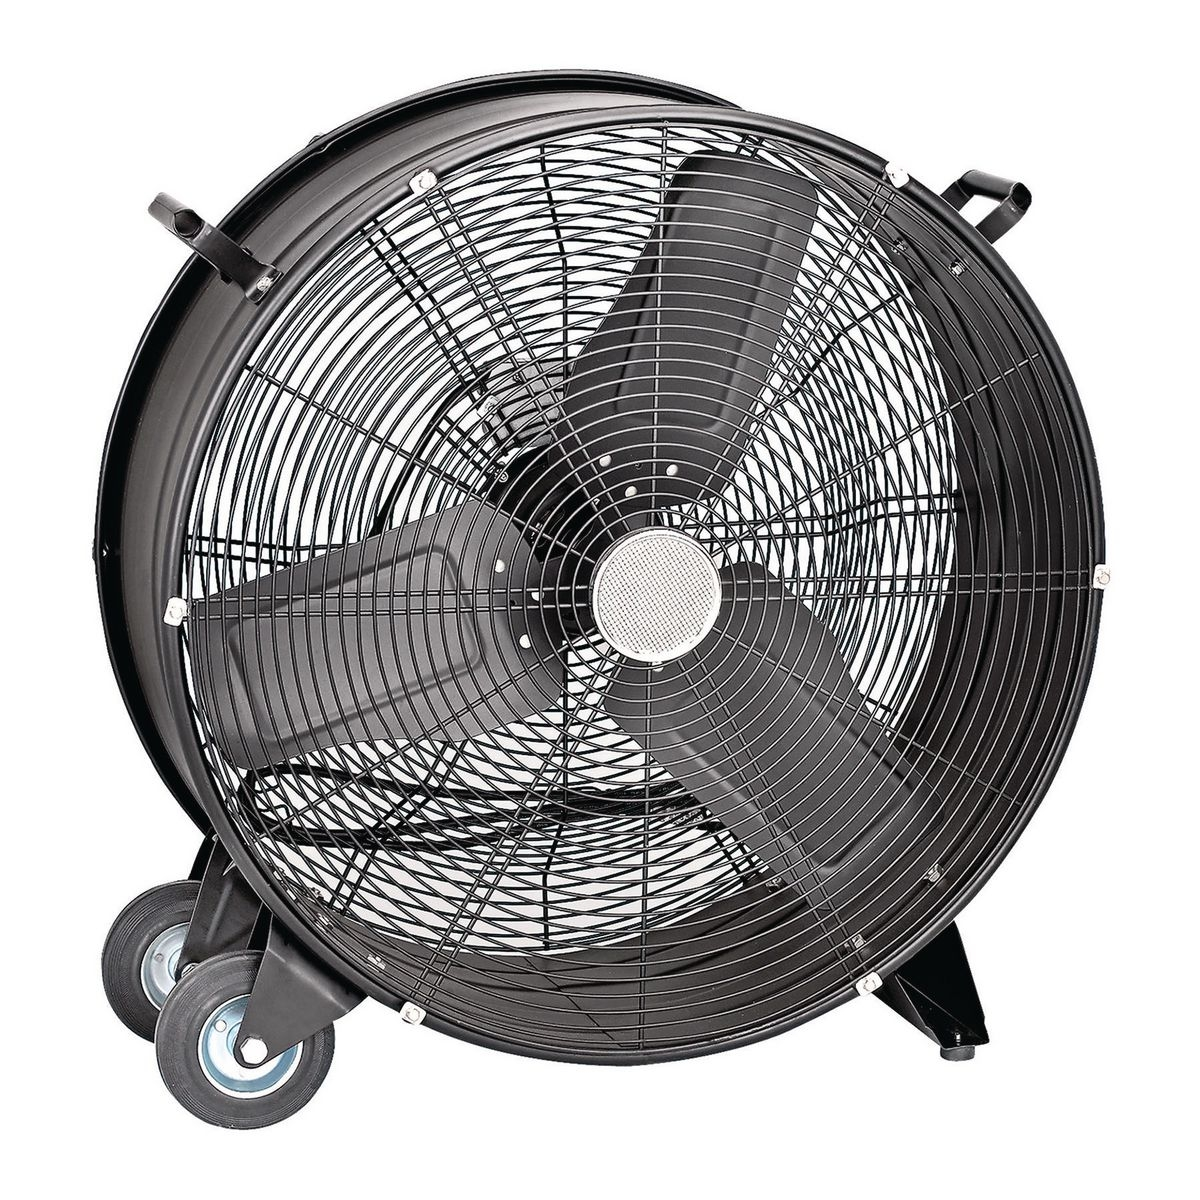 Central Machinery 24 In High Velocity Shop Fan Item 93532 56742 62210 Harbor Freight Coupons